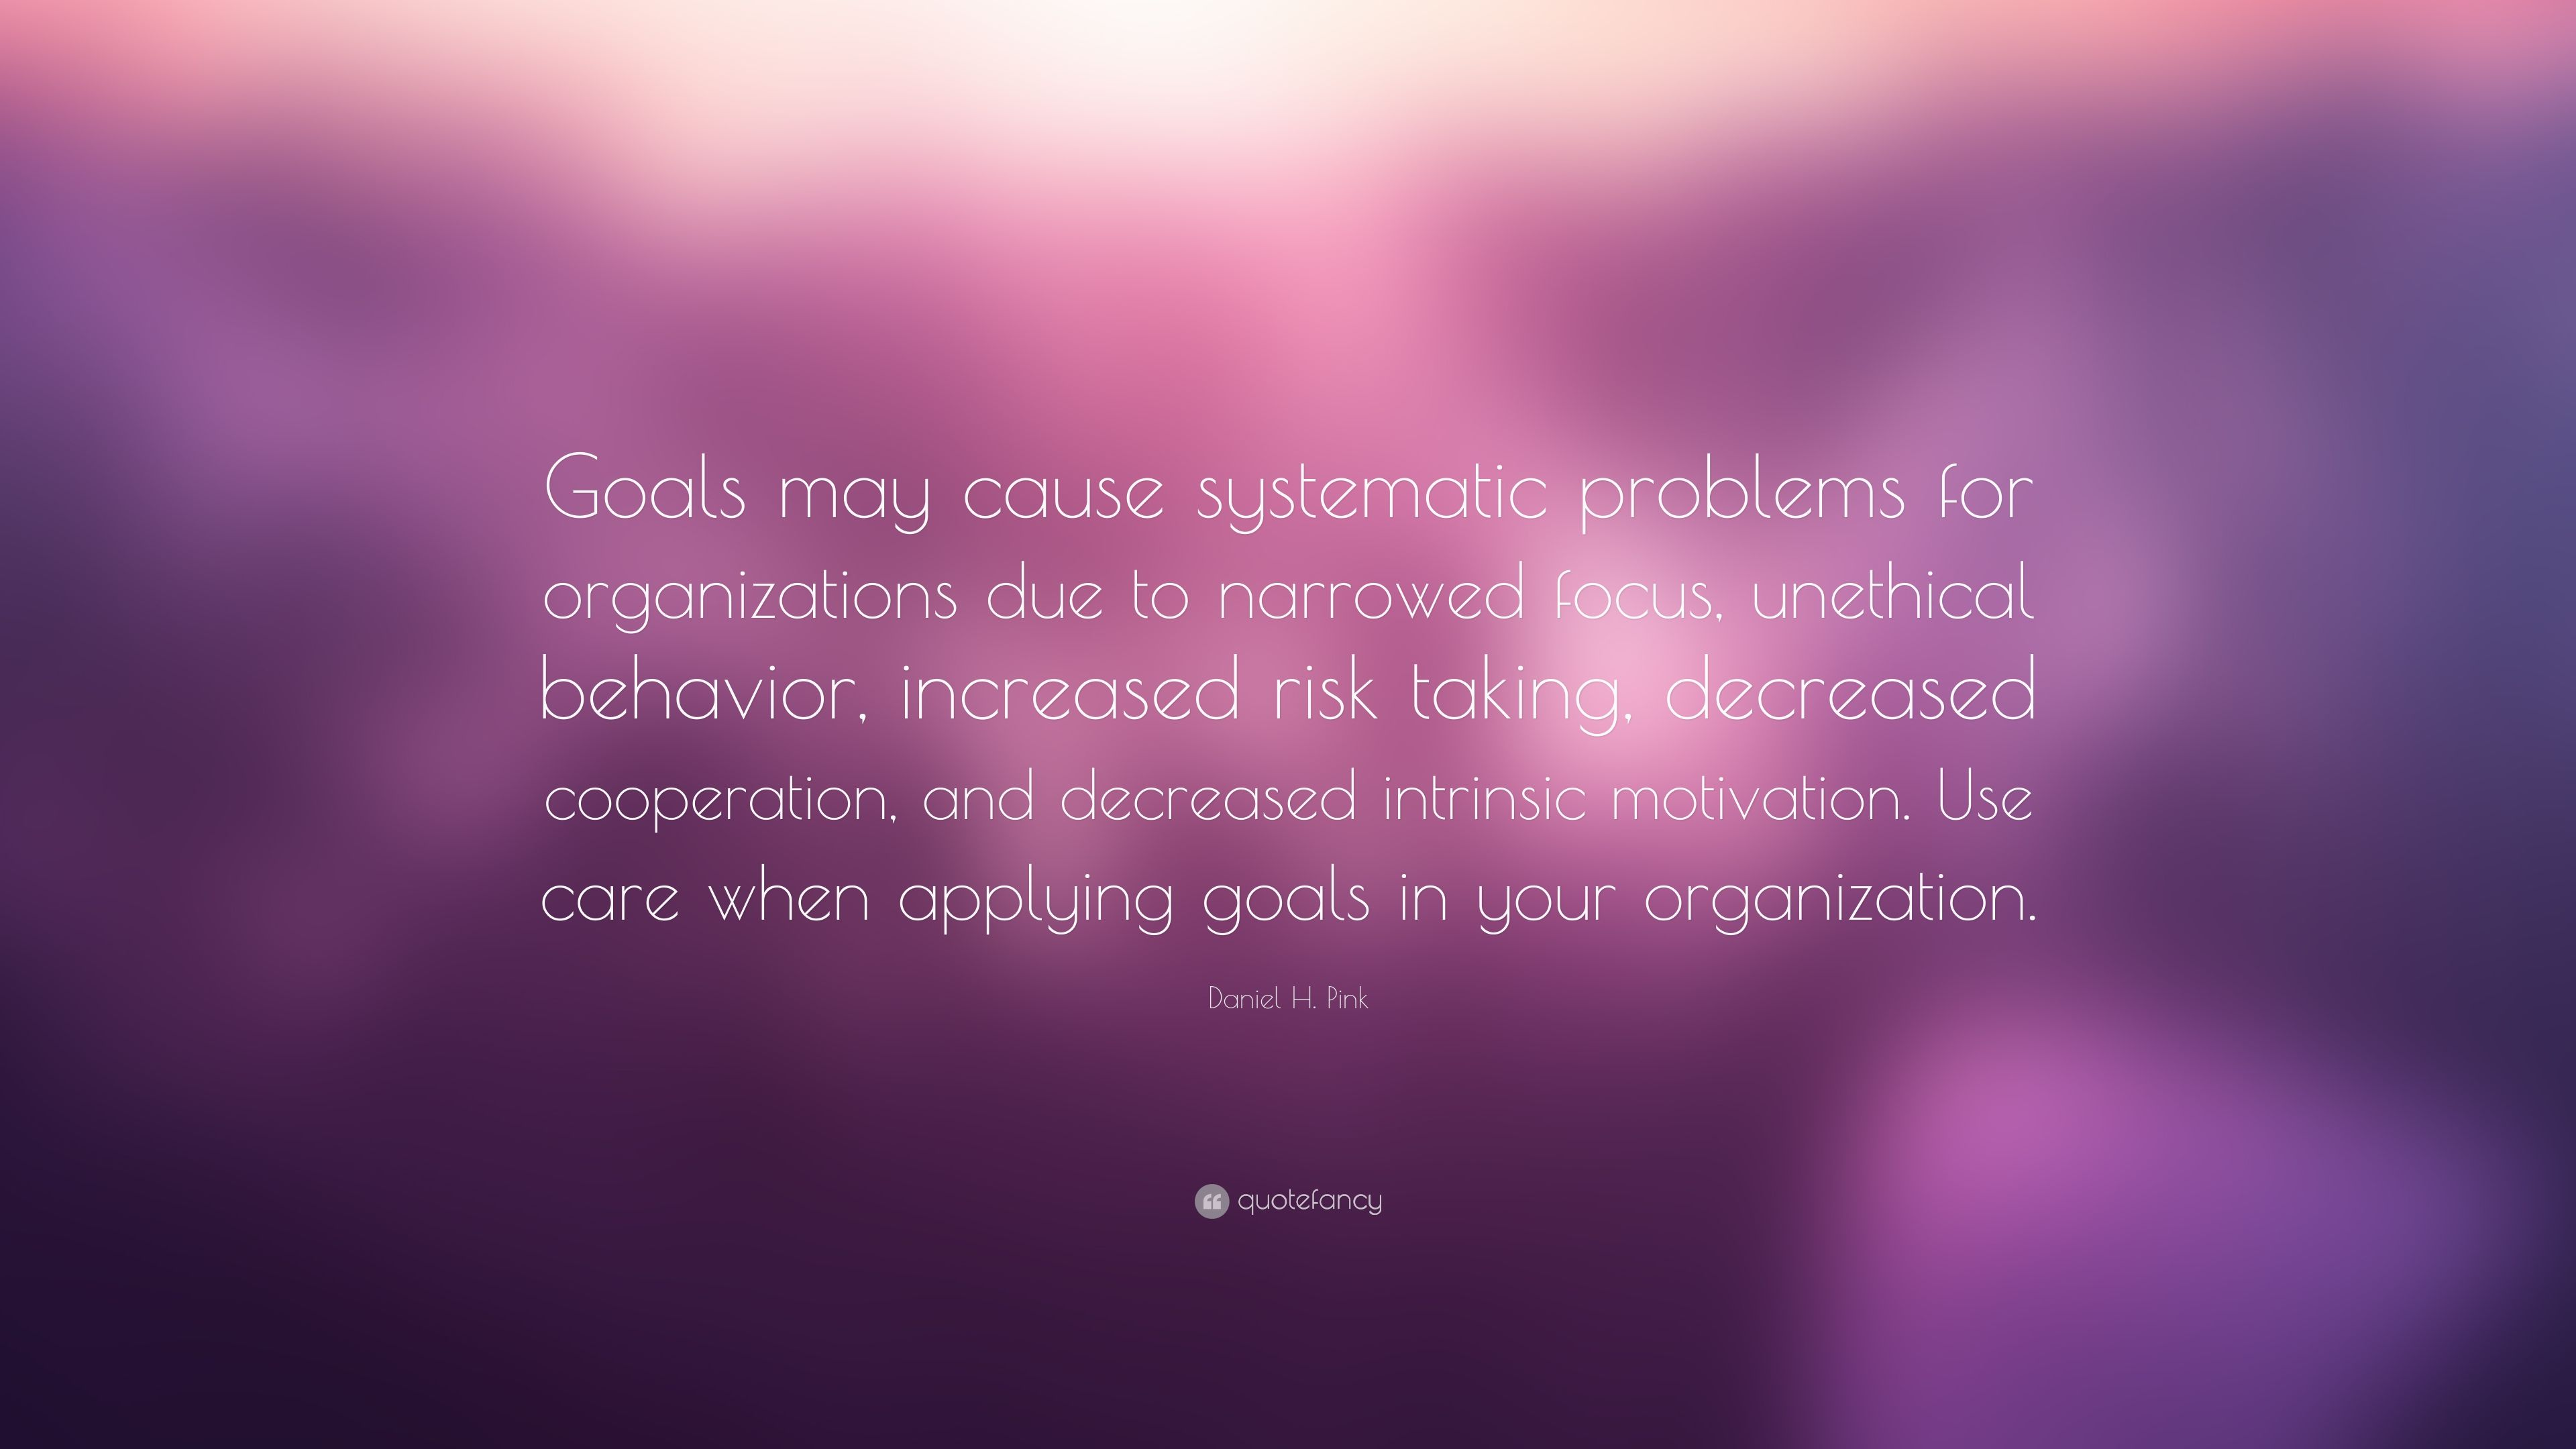 Why Risk Taking Behavior Increases >> Daniel H Pink Quote Goals May Cause Systematic Problems For